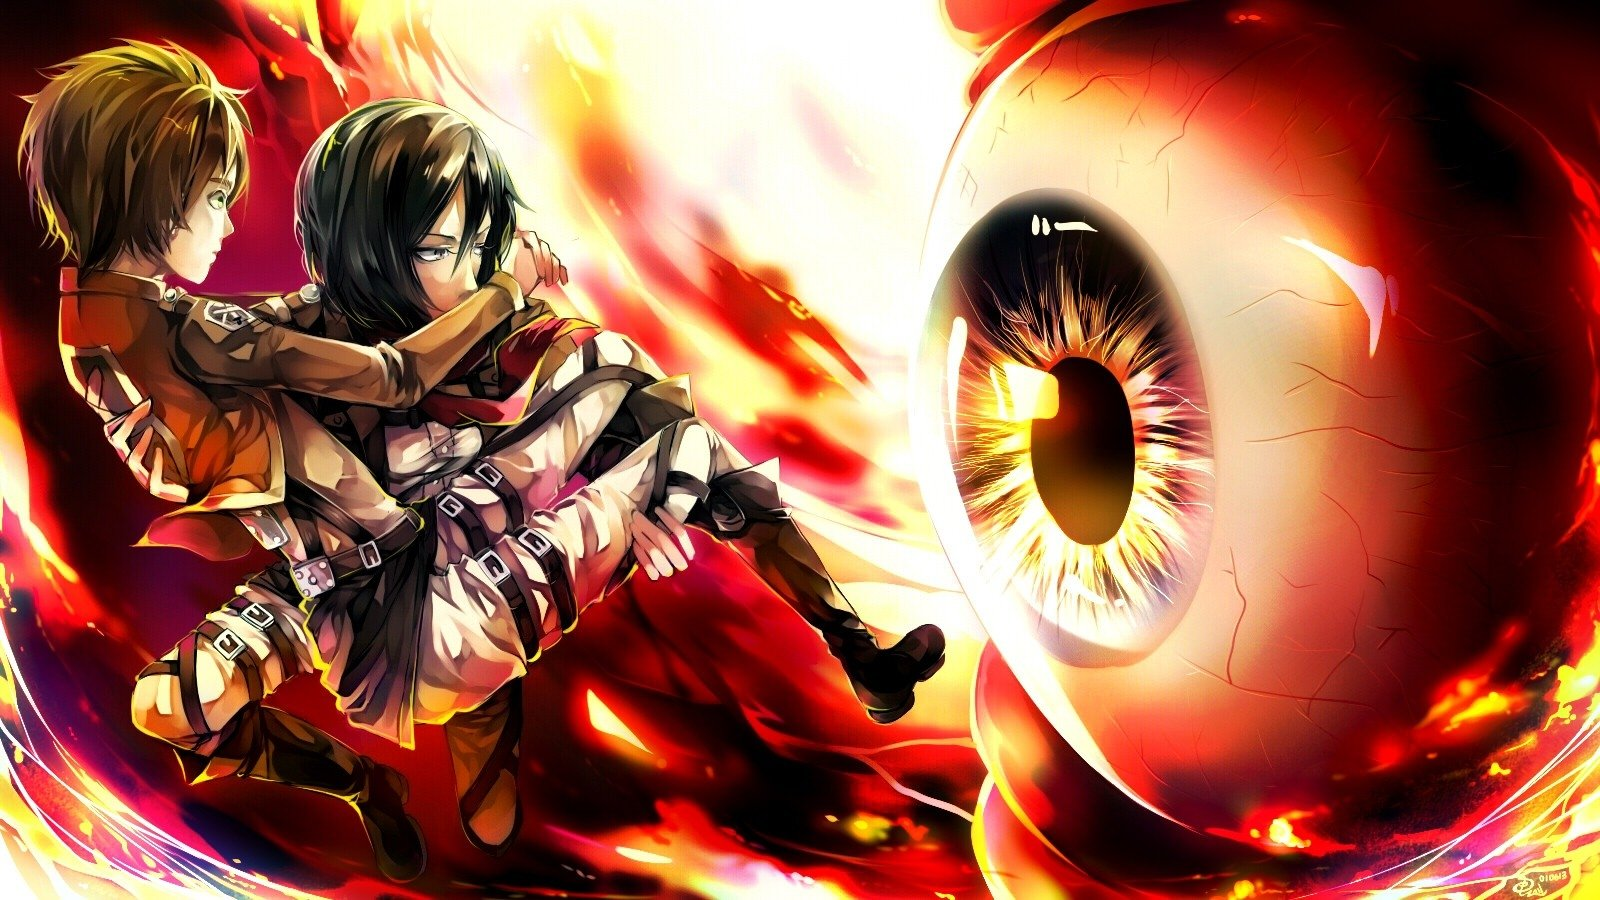 Attack On Titan Wallpaper and Background | 1600x900 | ID ...